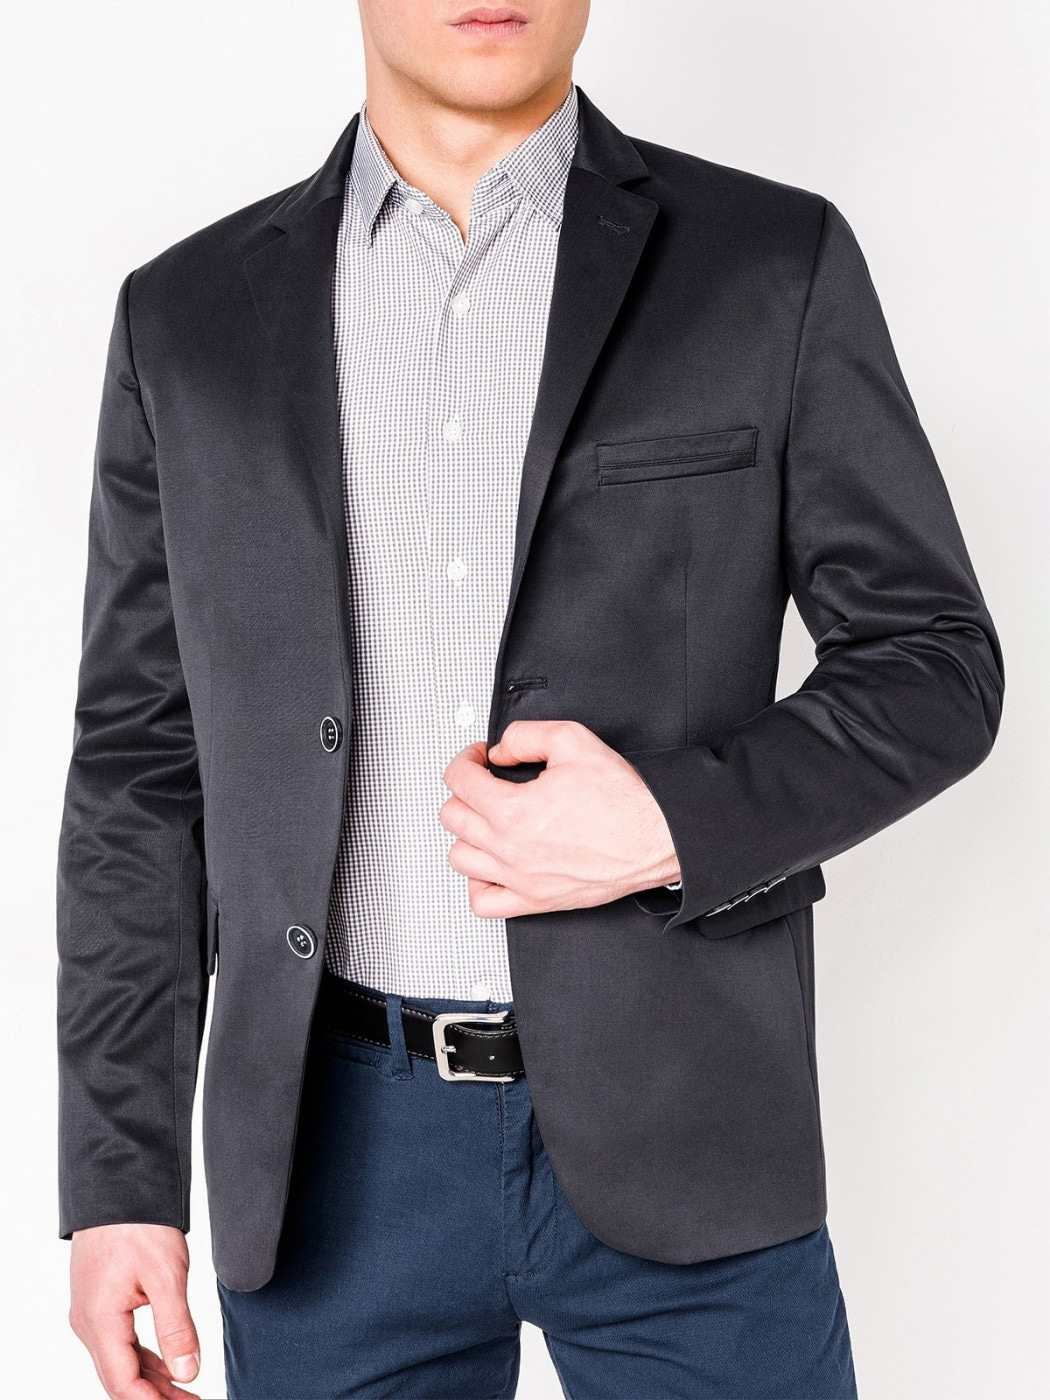 Ombre Clothing Men's elegant blazer jacket M155